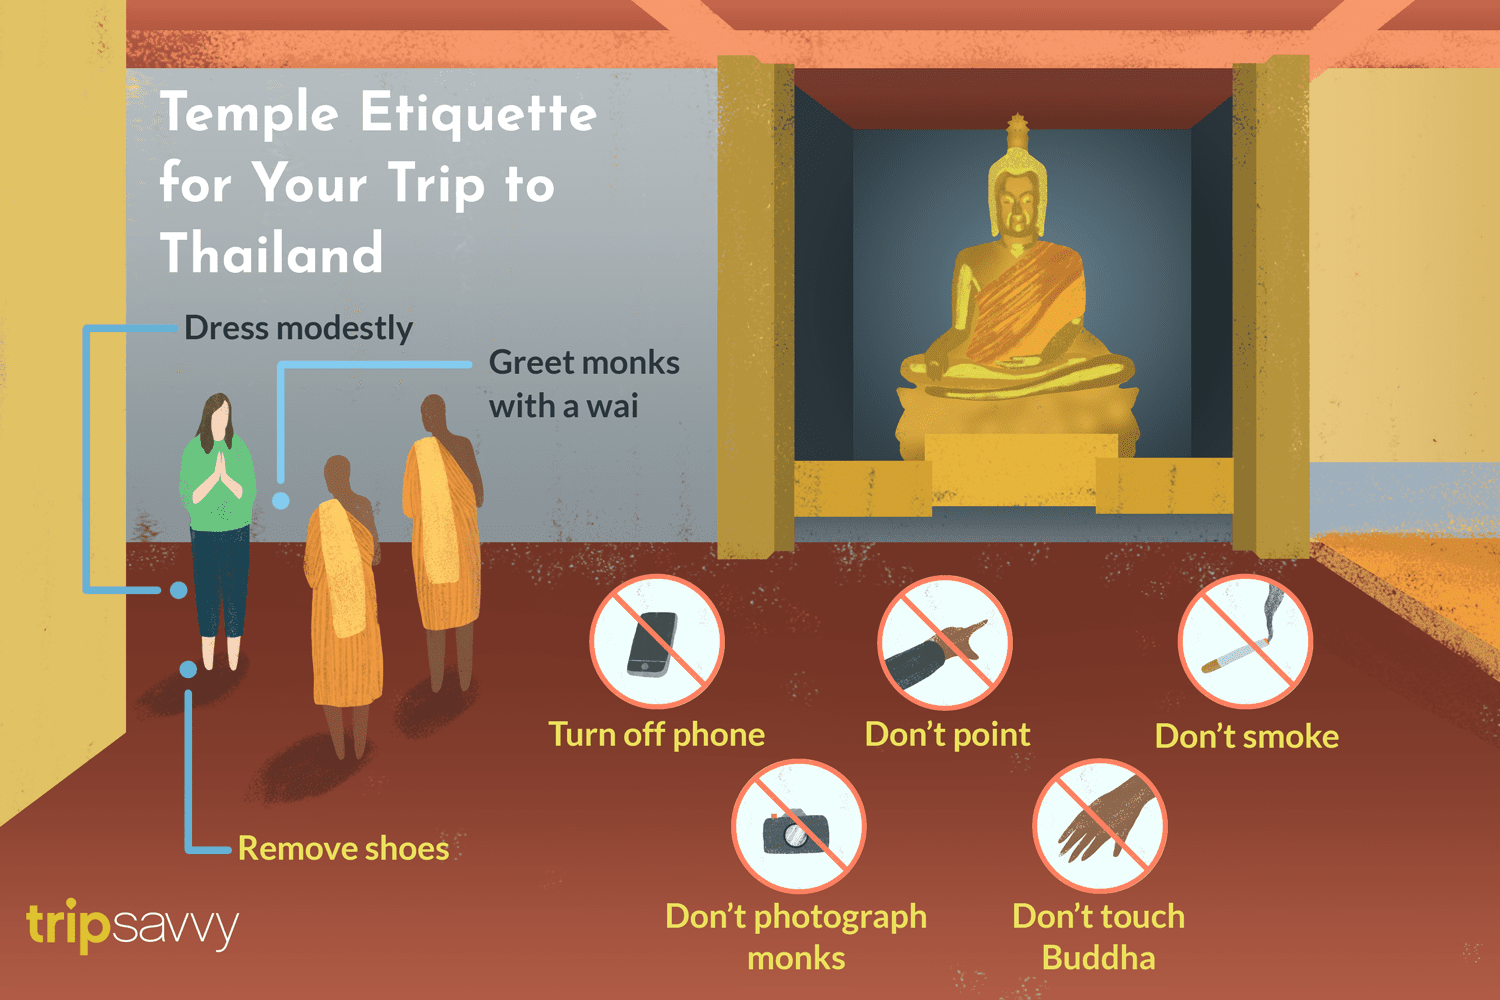 Temple Etiquette for Your Trip to Thailand